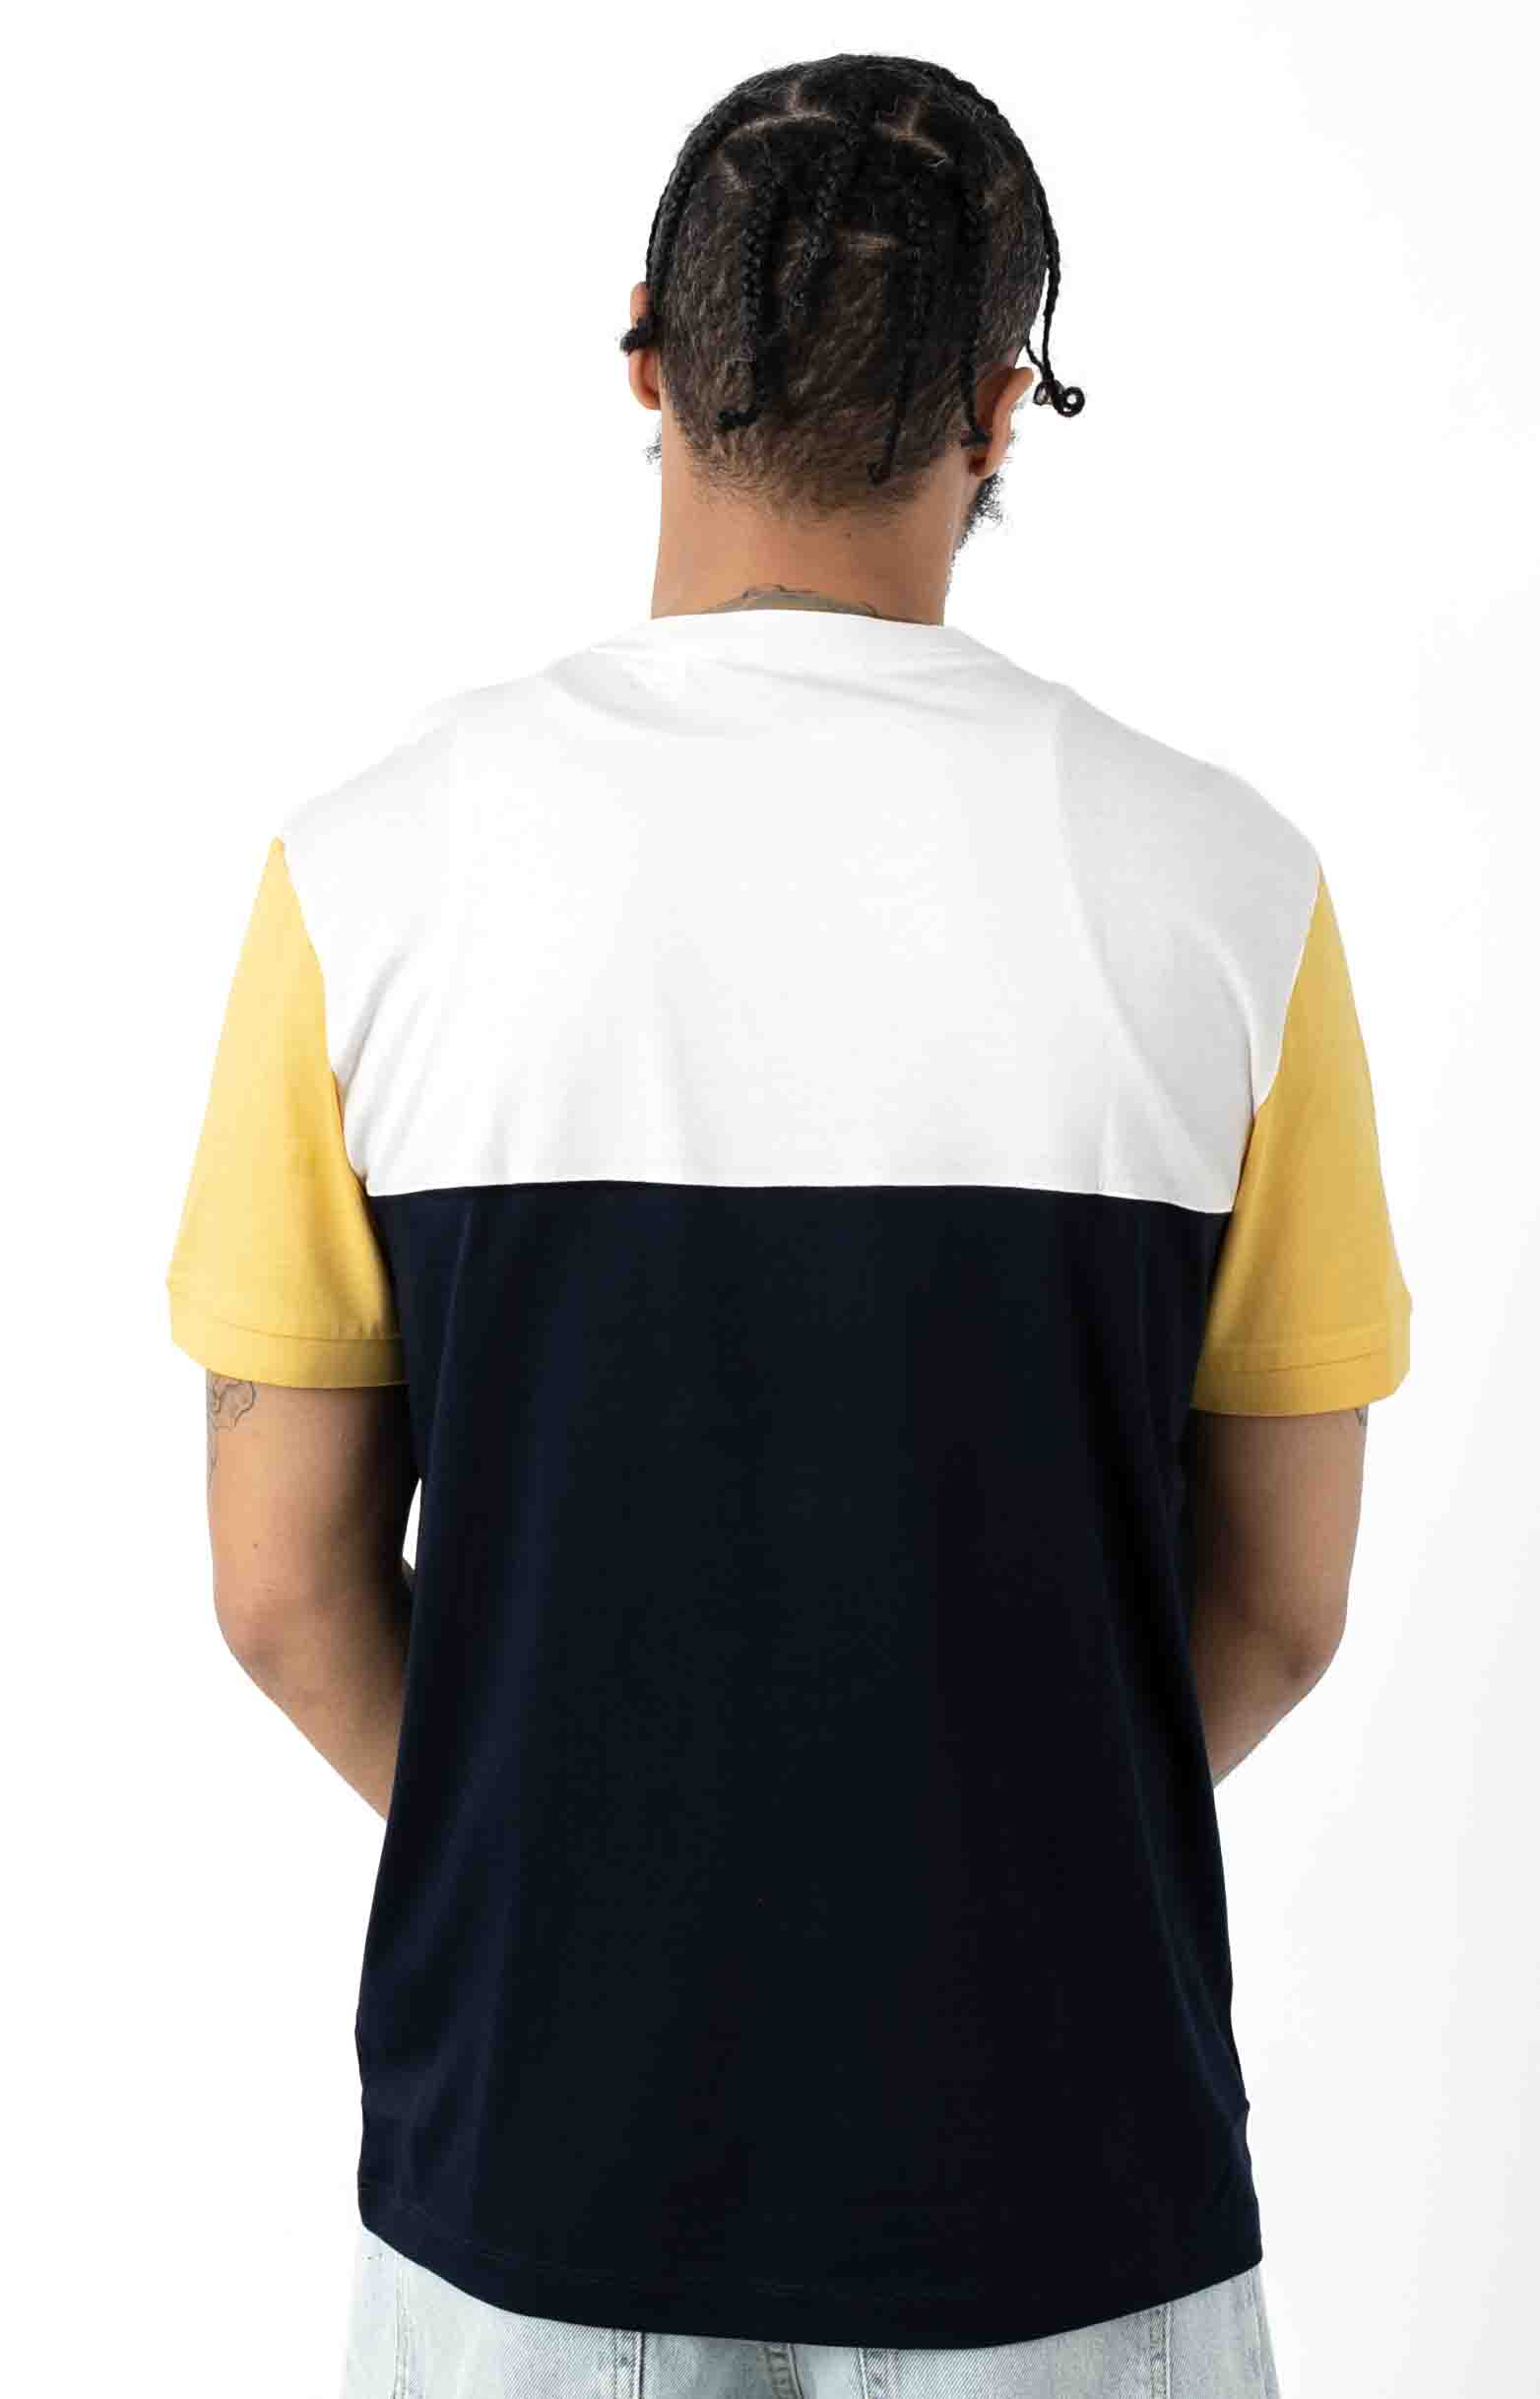 Colorblock Regular Fit Cotton Jersey T-Shirt - Navy Blue/White 3